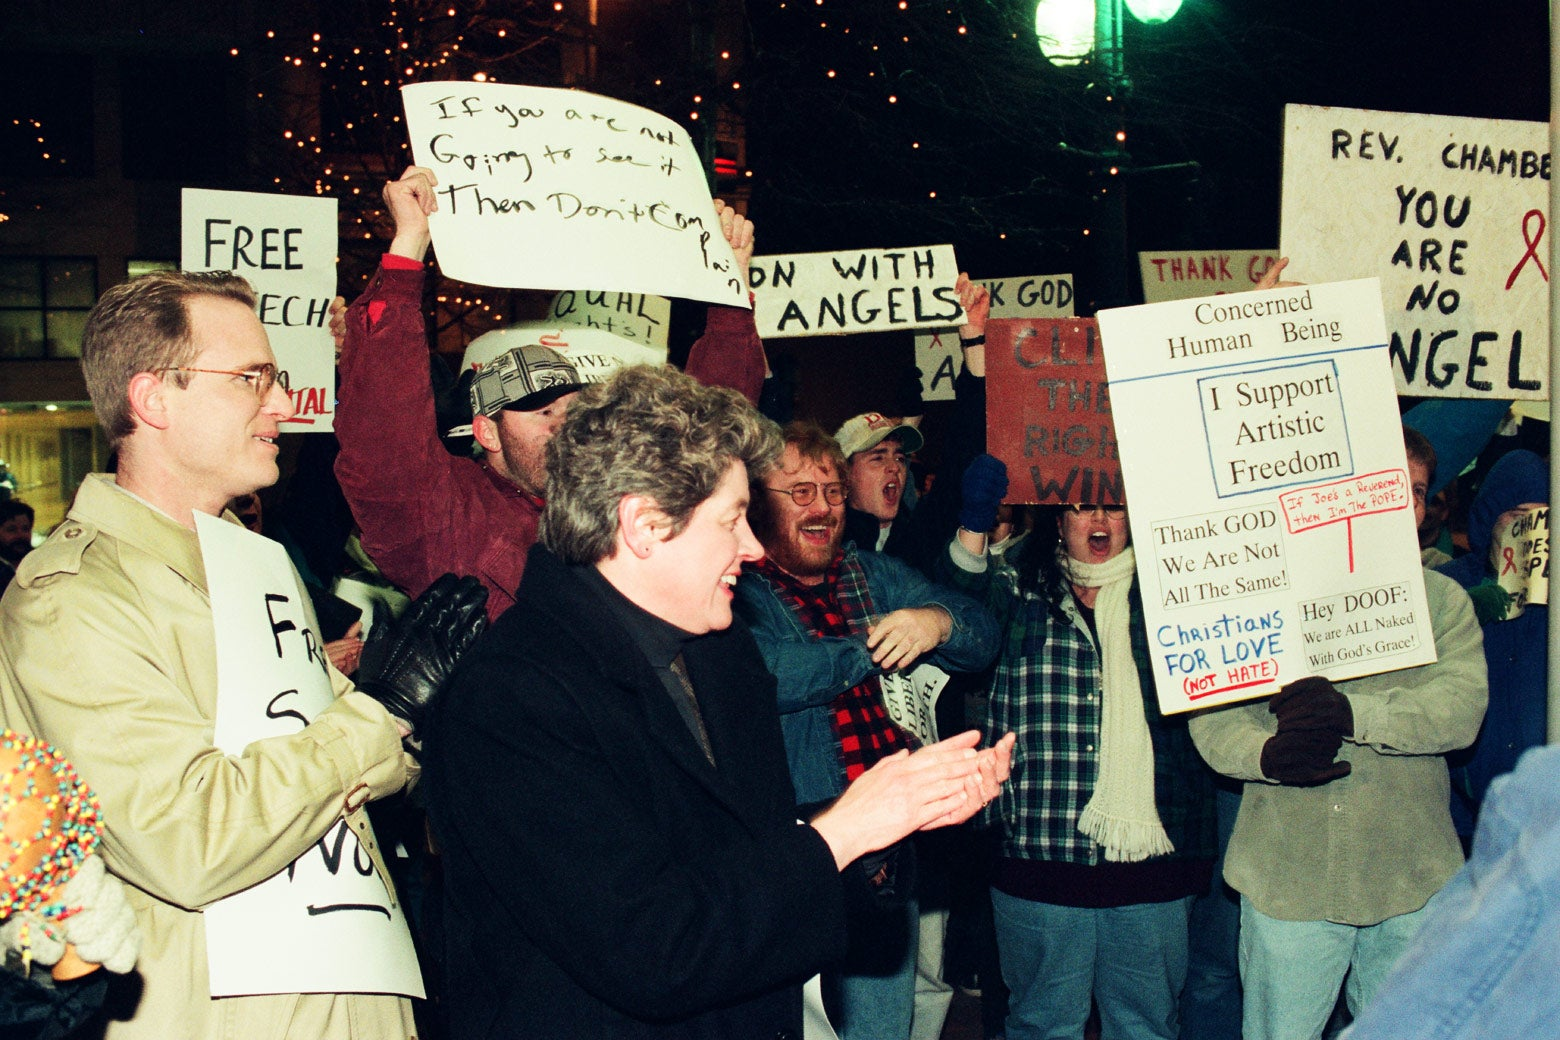 Supporters of the Charlotte Rep production counterprotest on the night of the show's first performance, March 20, 1996.